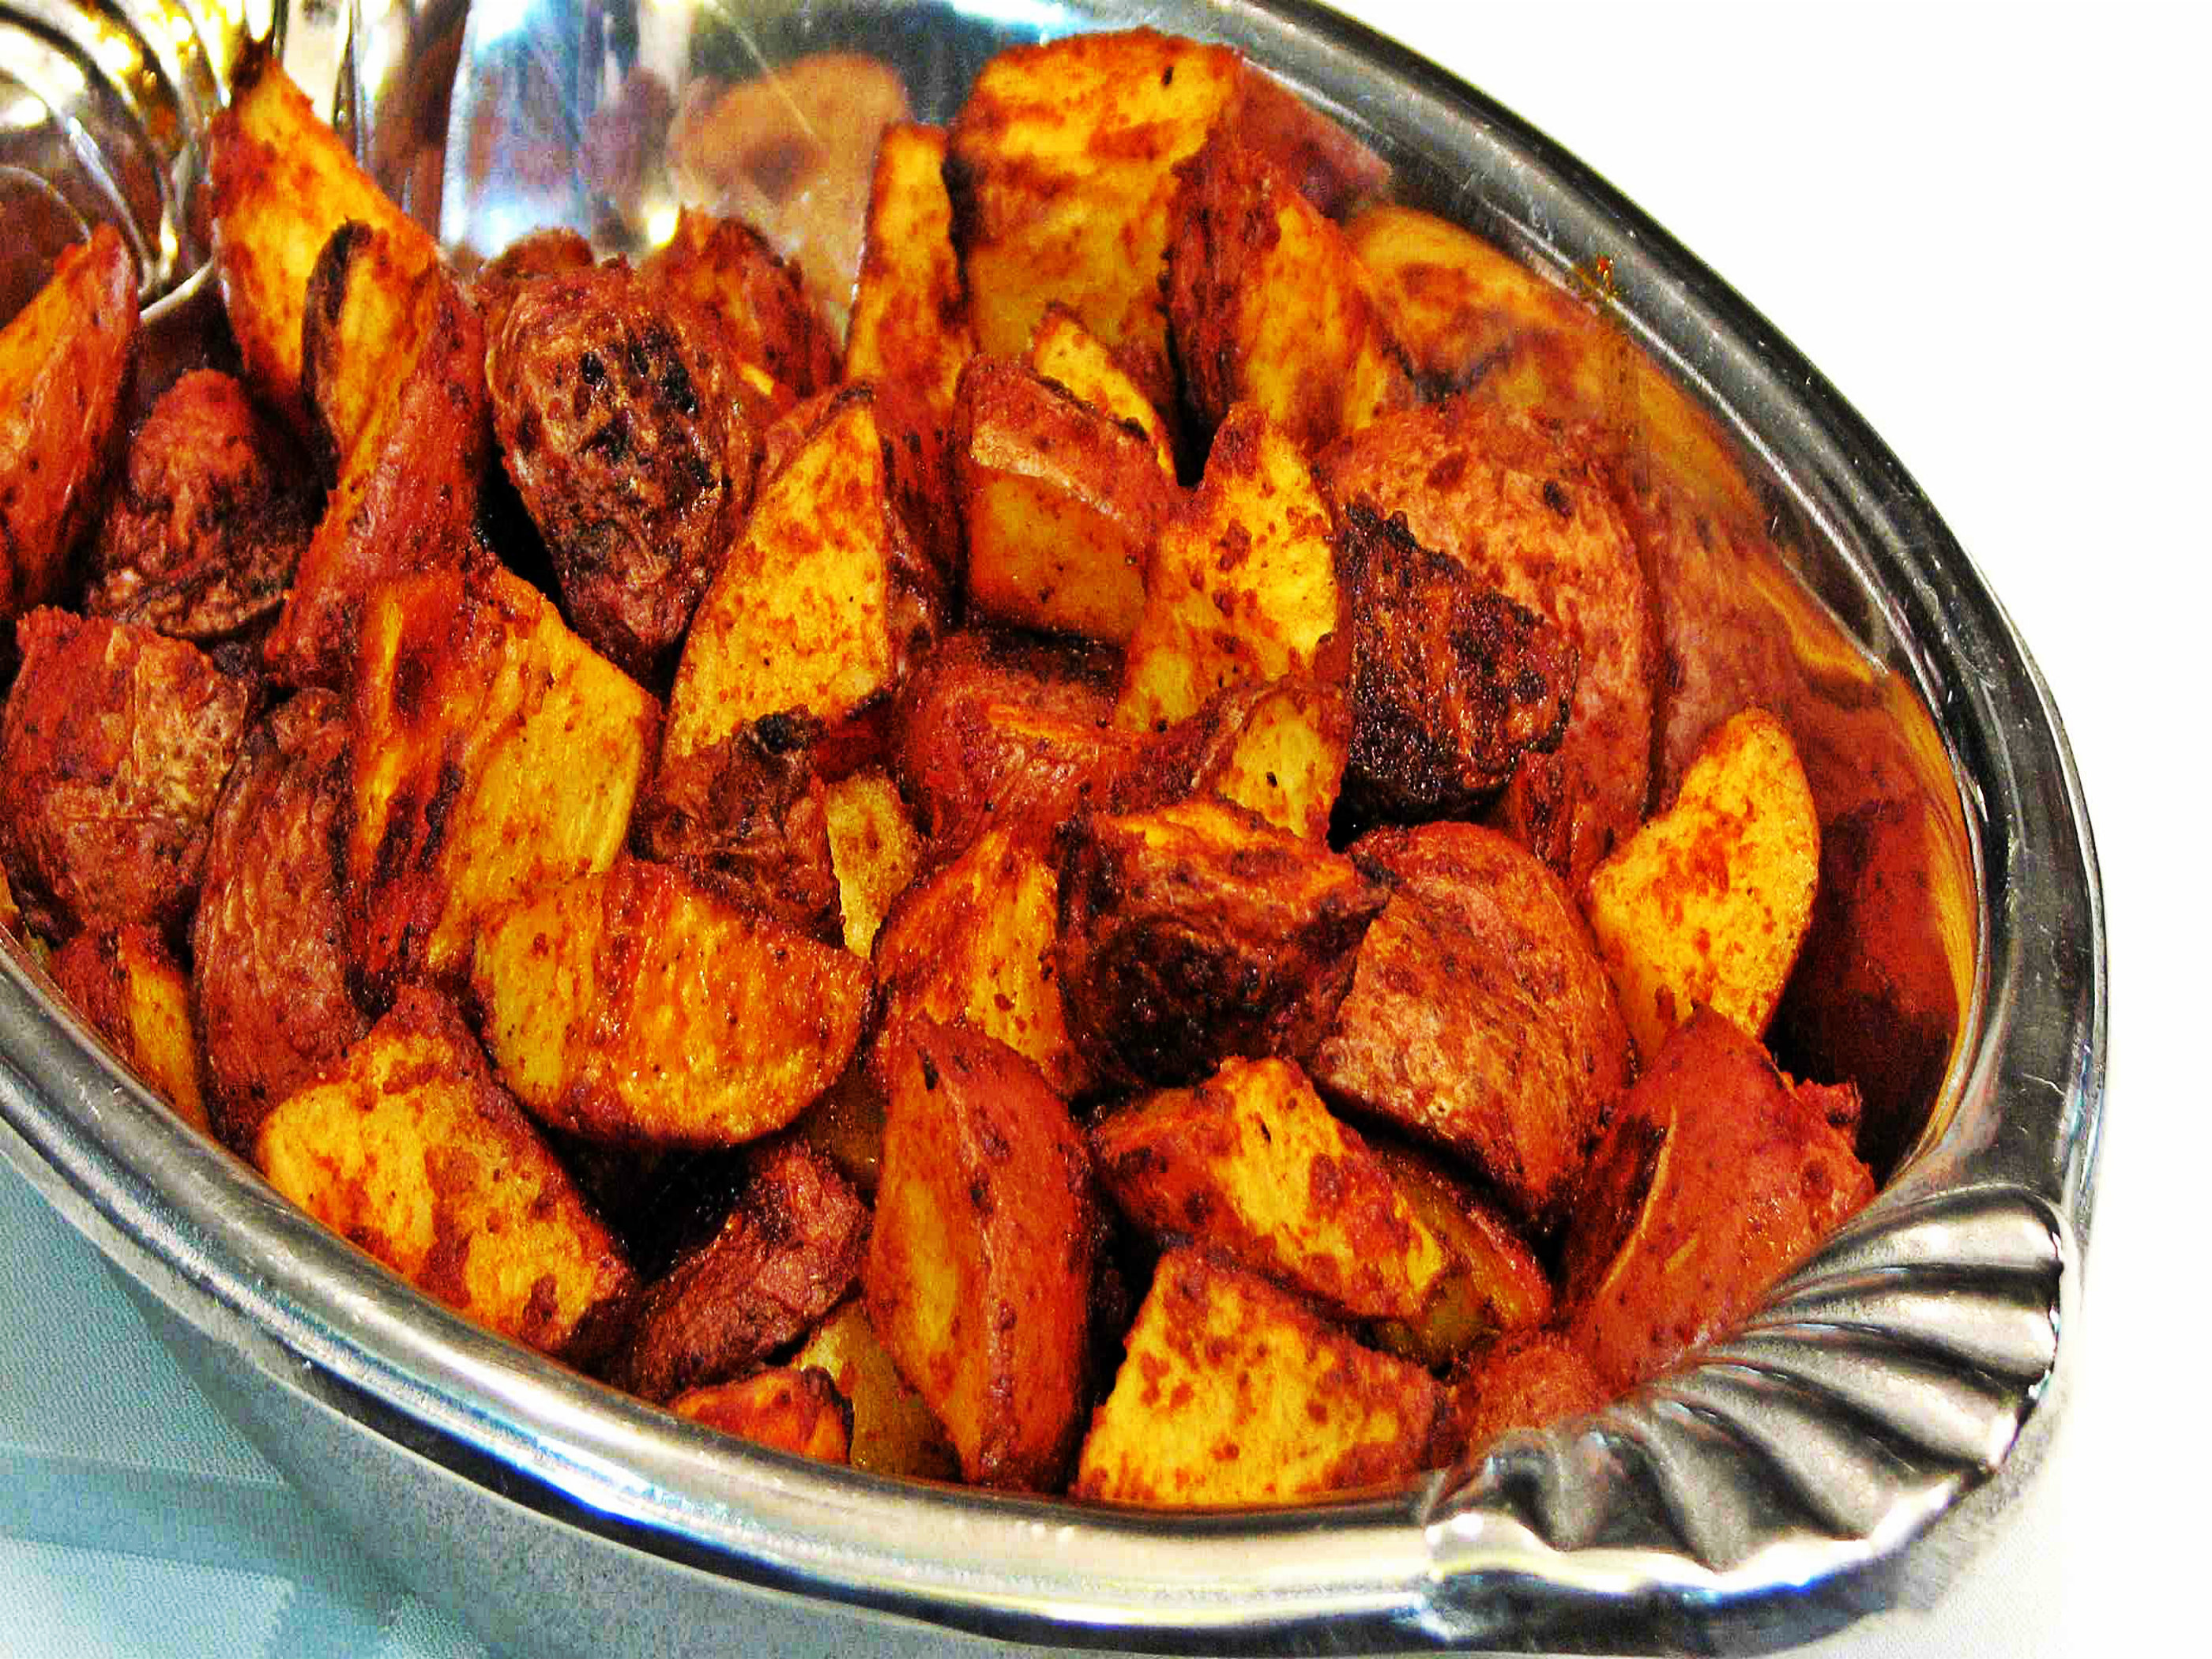 roasted red potatoes with paprika roasted potatoes with smoked paprika ...